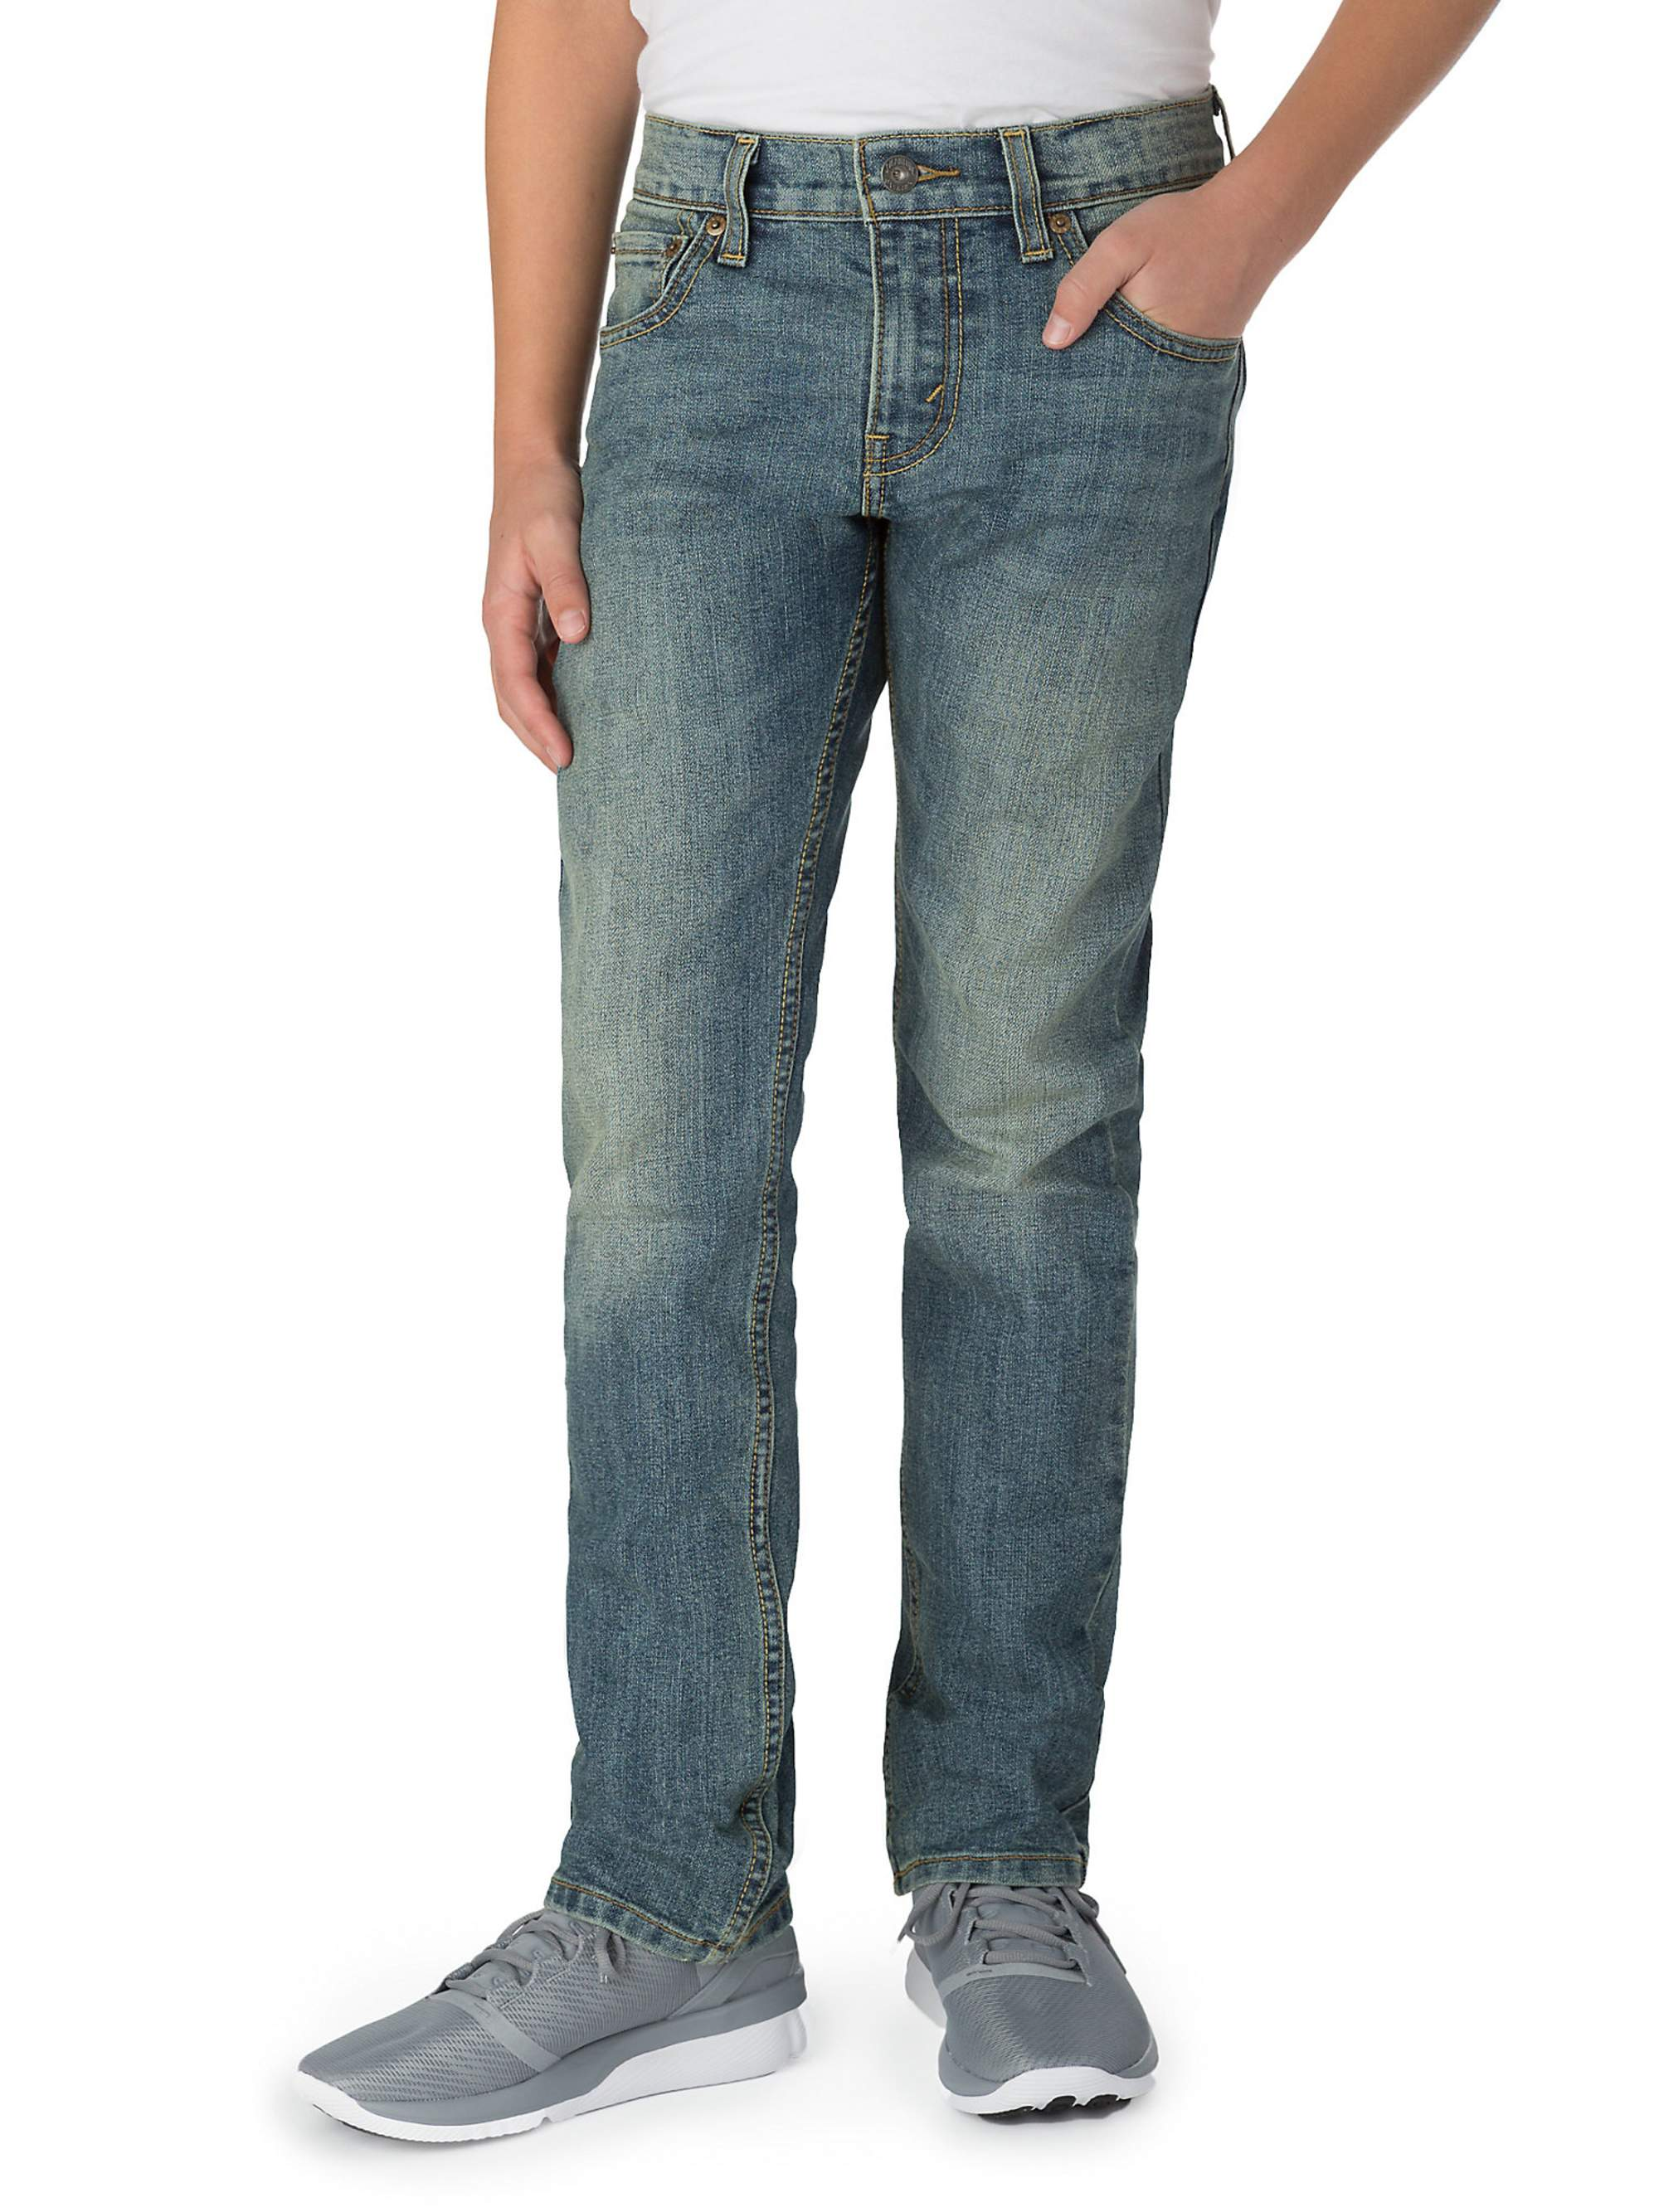 9d8a530cc4c Signature by Levi Strauss & Co. - Skinny Fit Jeans (Little Boys & Big Boys)  - Walmart.com